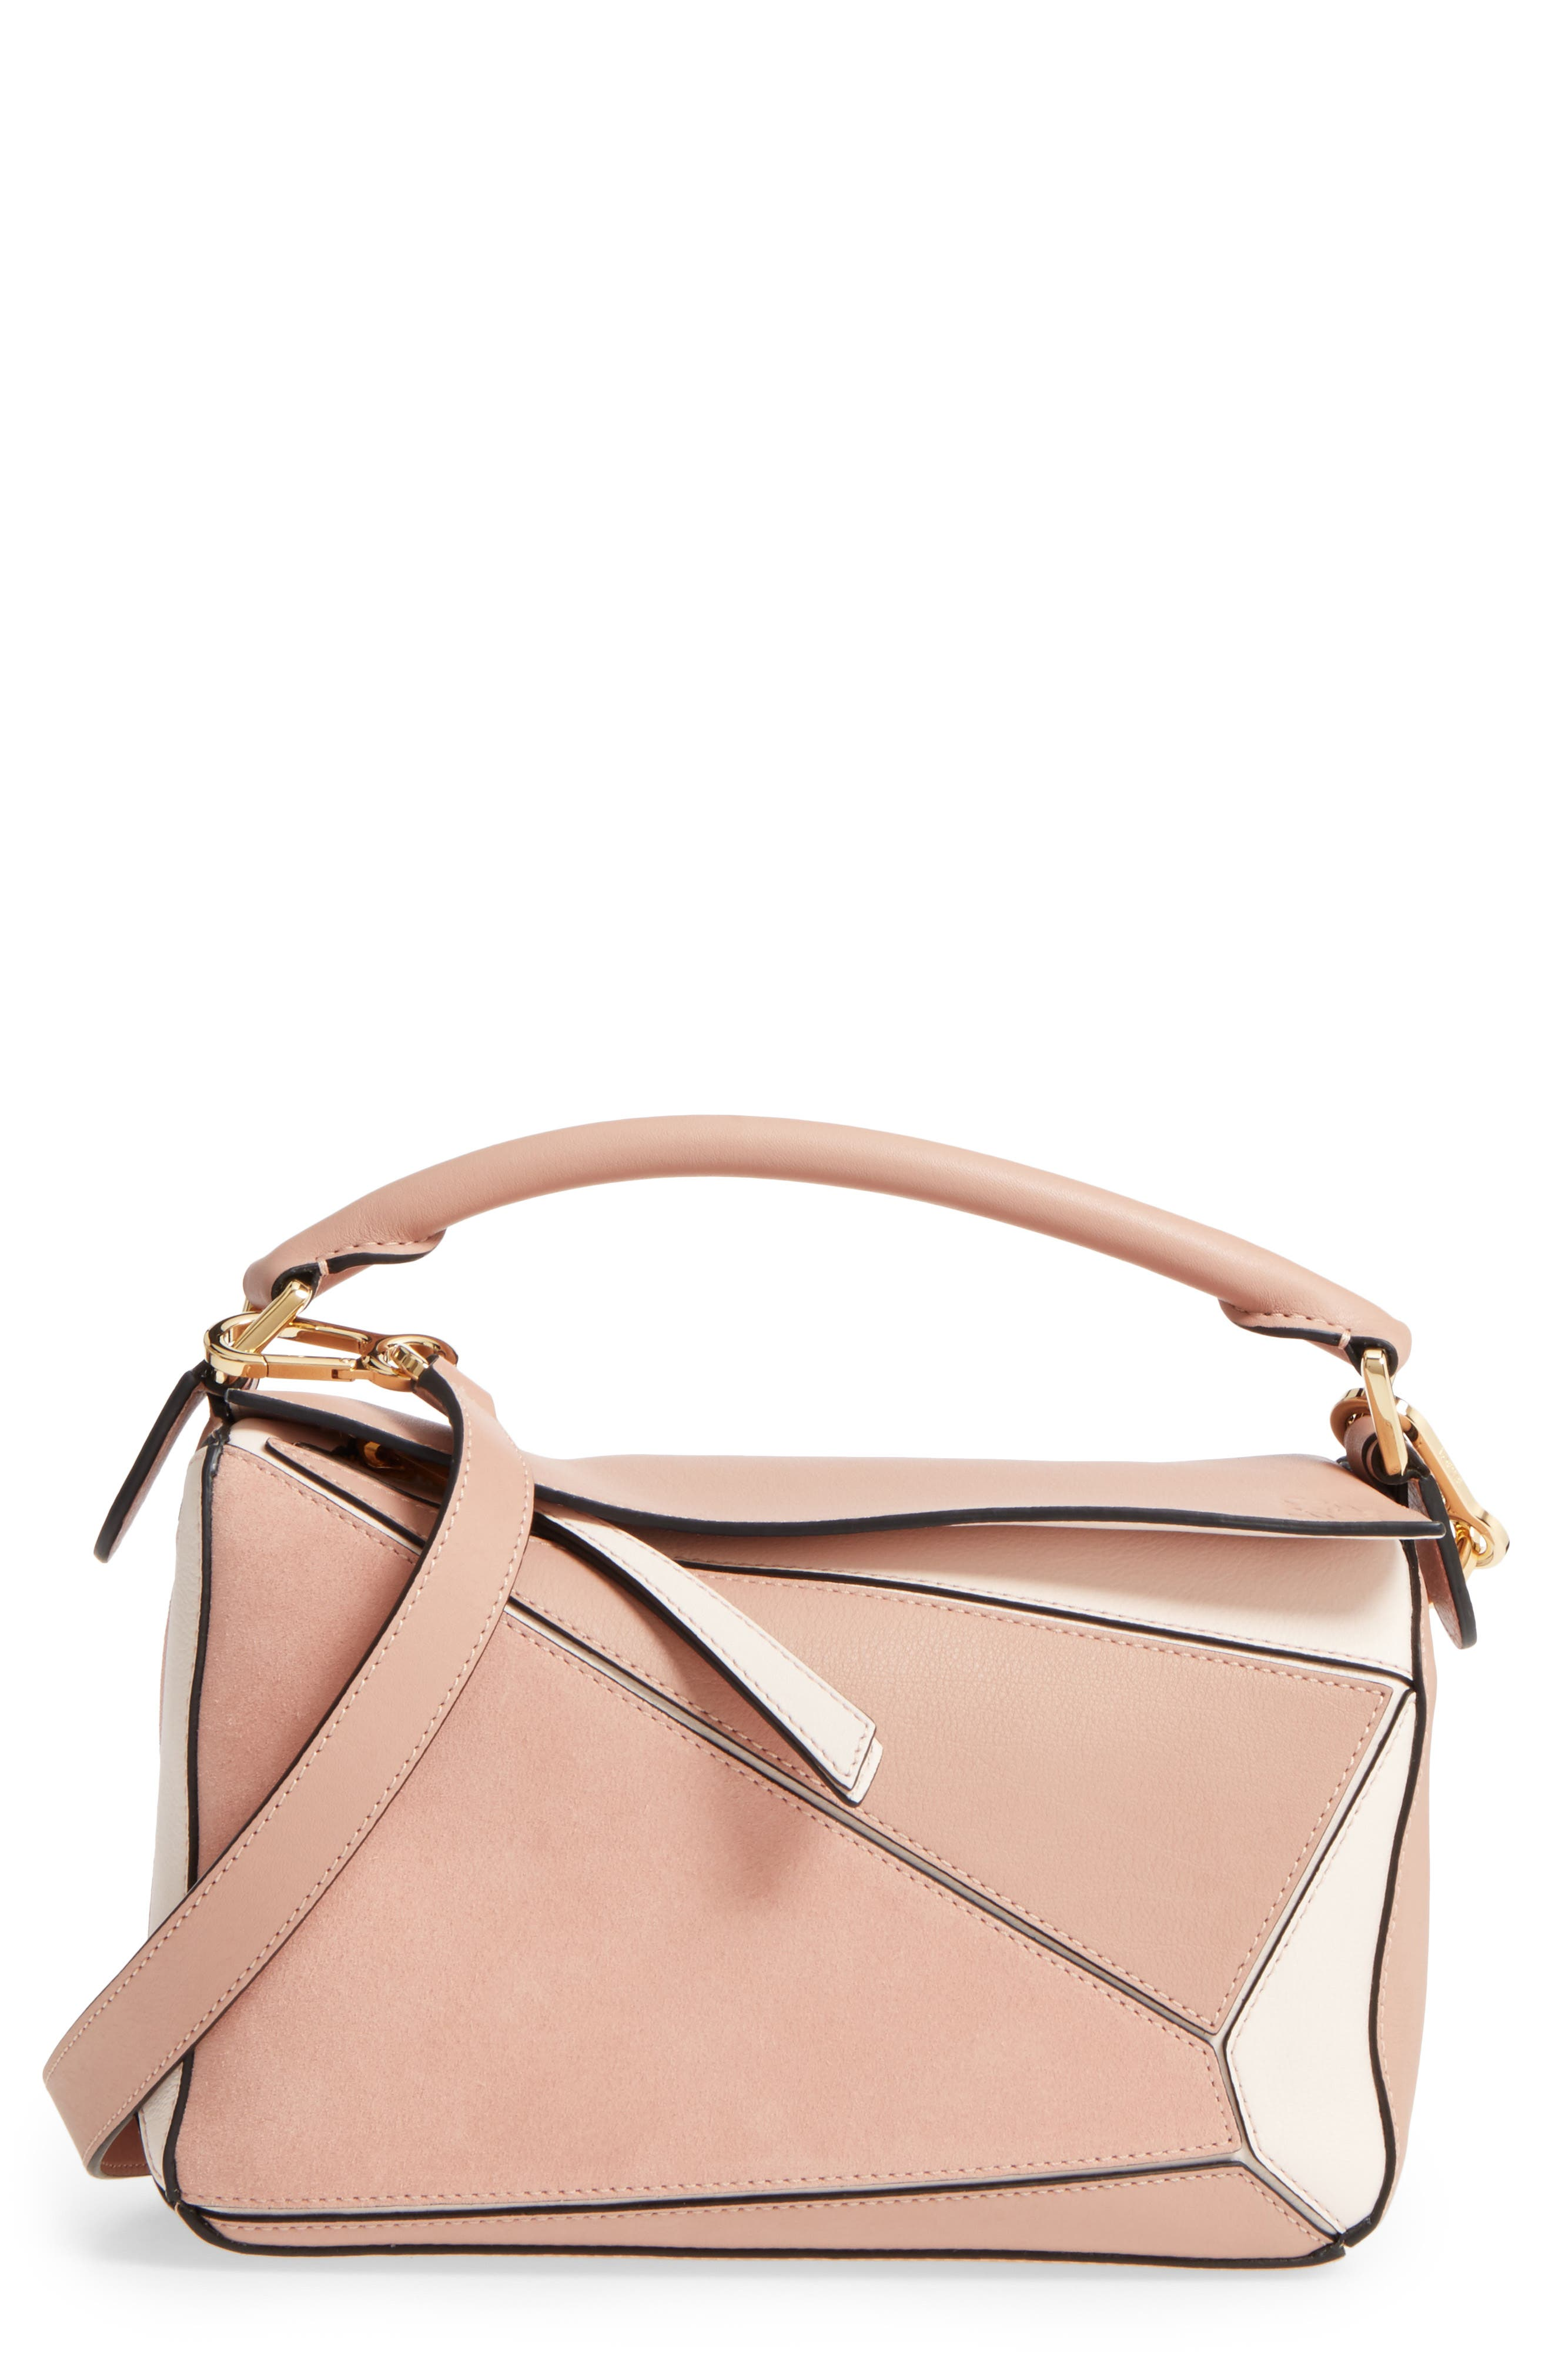 Main Image - Loewe Small Puzzle Bicolor Leather Bag